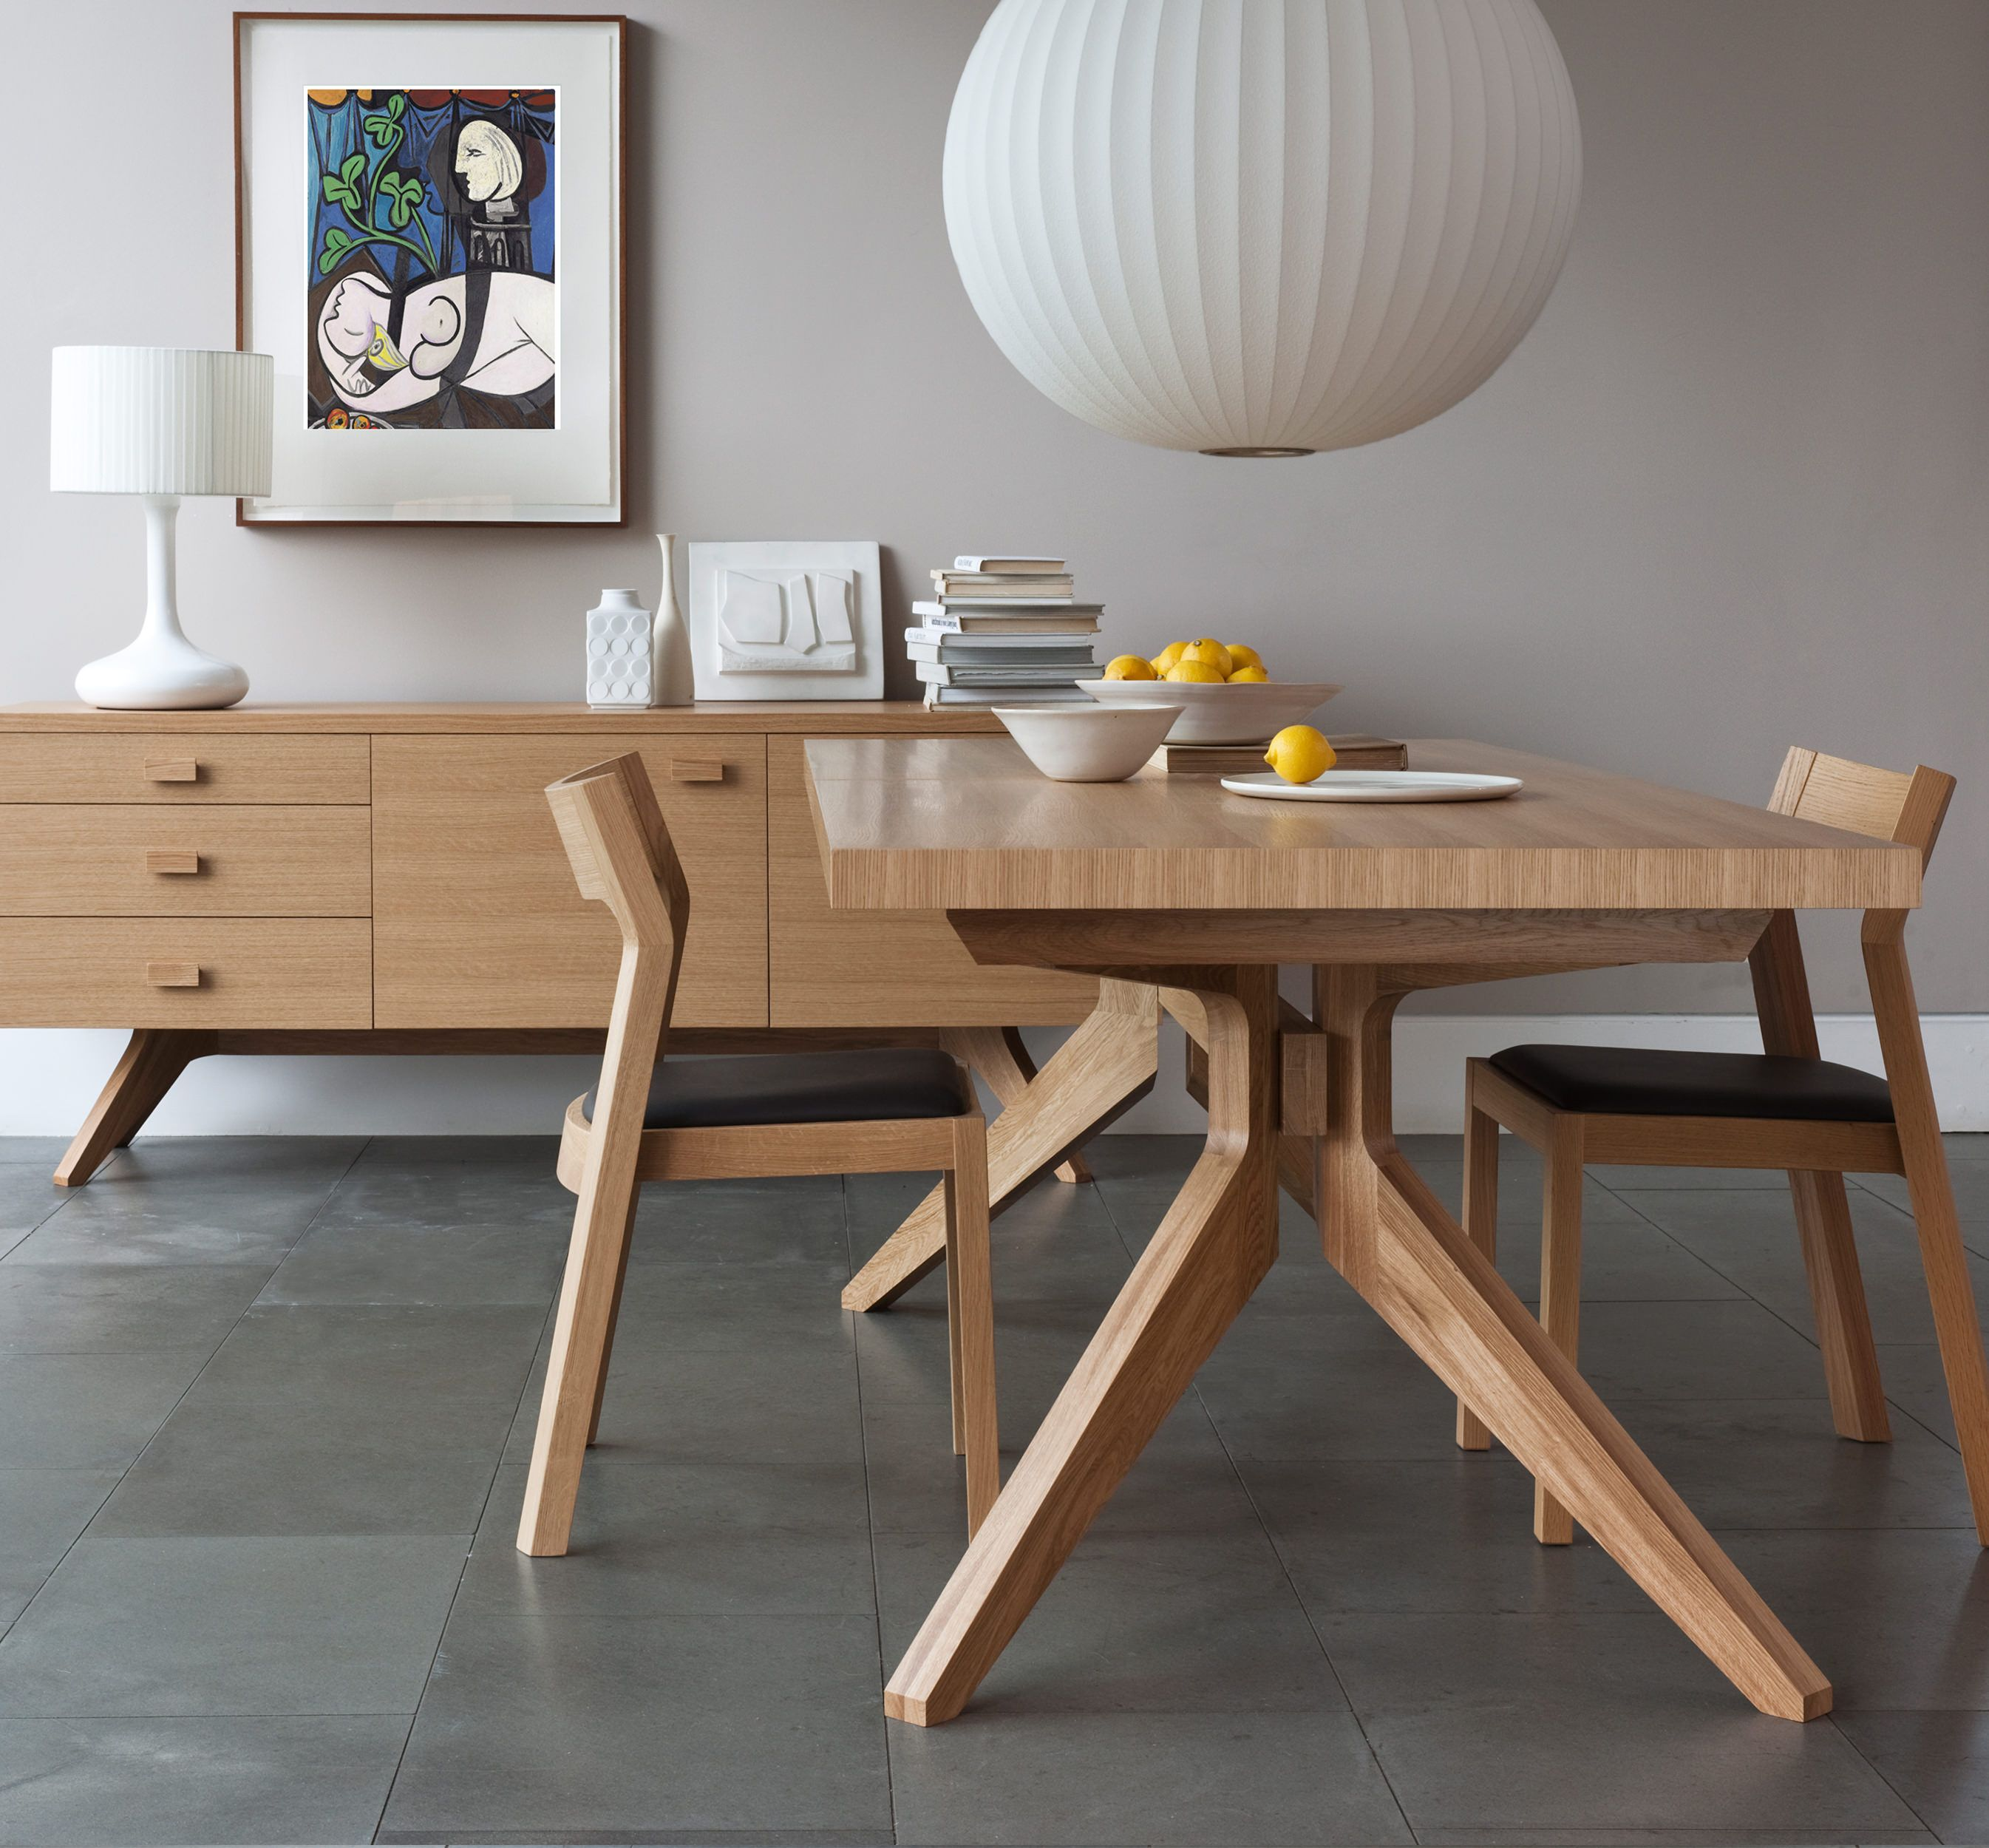 Beautiful Buy TL071 Matthew Hilton Cross Dining TableWood Furniture On Bdtdc.com